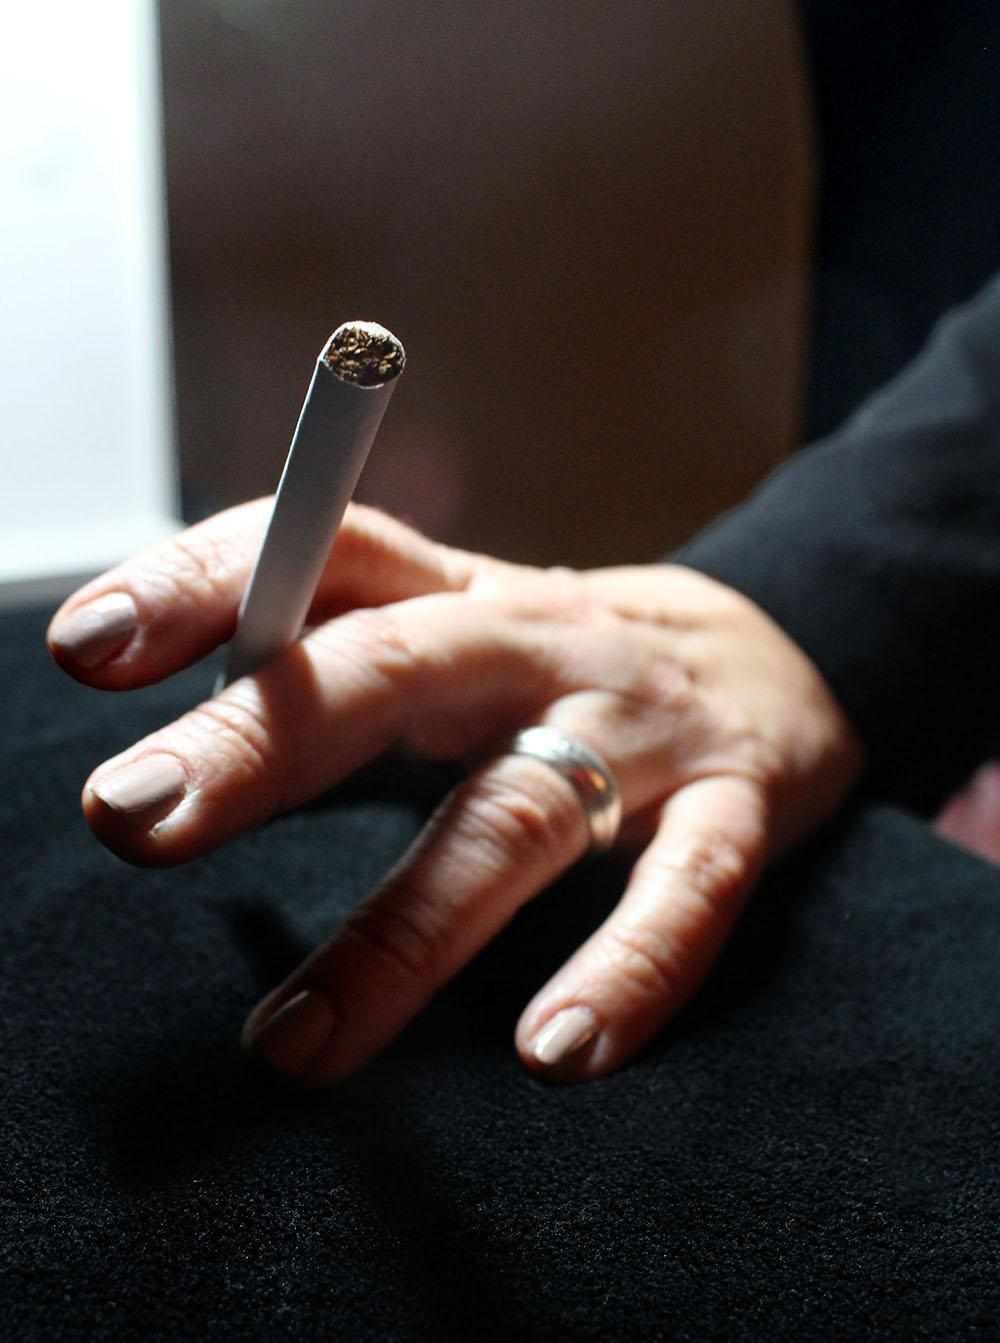 A tobacco cigarette rests between two fingers waiting to be lit. In mid-November, the Kansas City, Mo. City Council and Kansas City, Kan.  Unified Government Board of Commission passed an ordinance raising the legal age to buy nicotine and vapor products from 18 years old to 21 years old. photo illustration by Kat Mediavilla